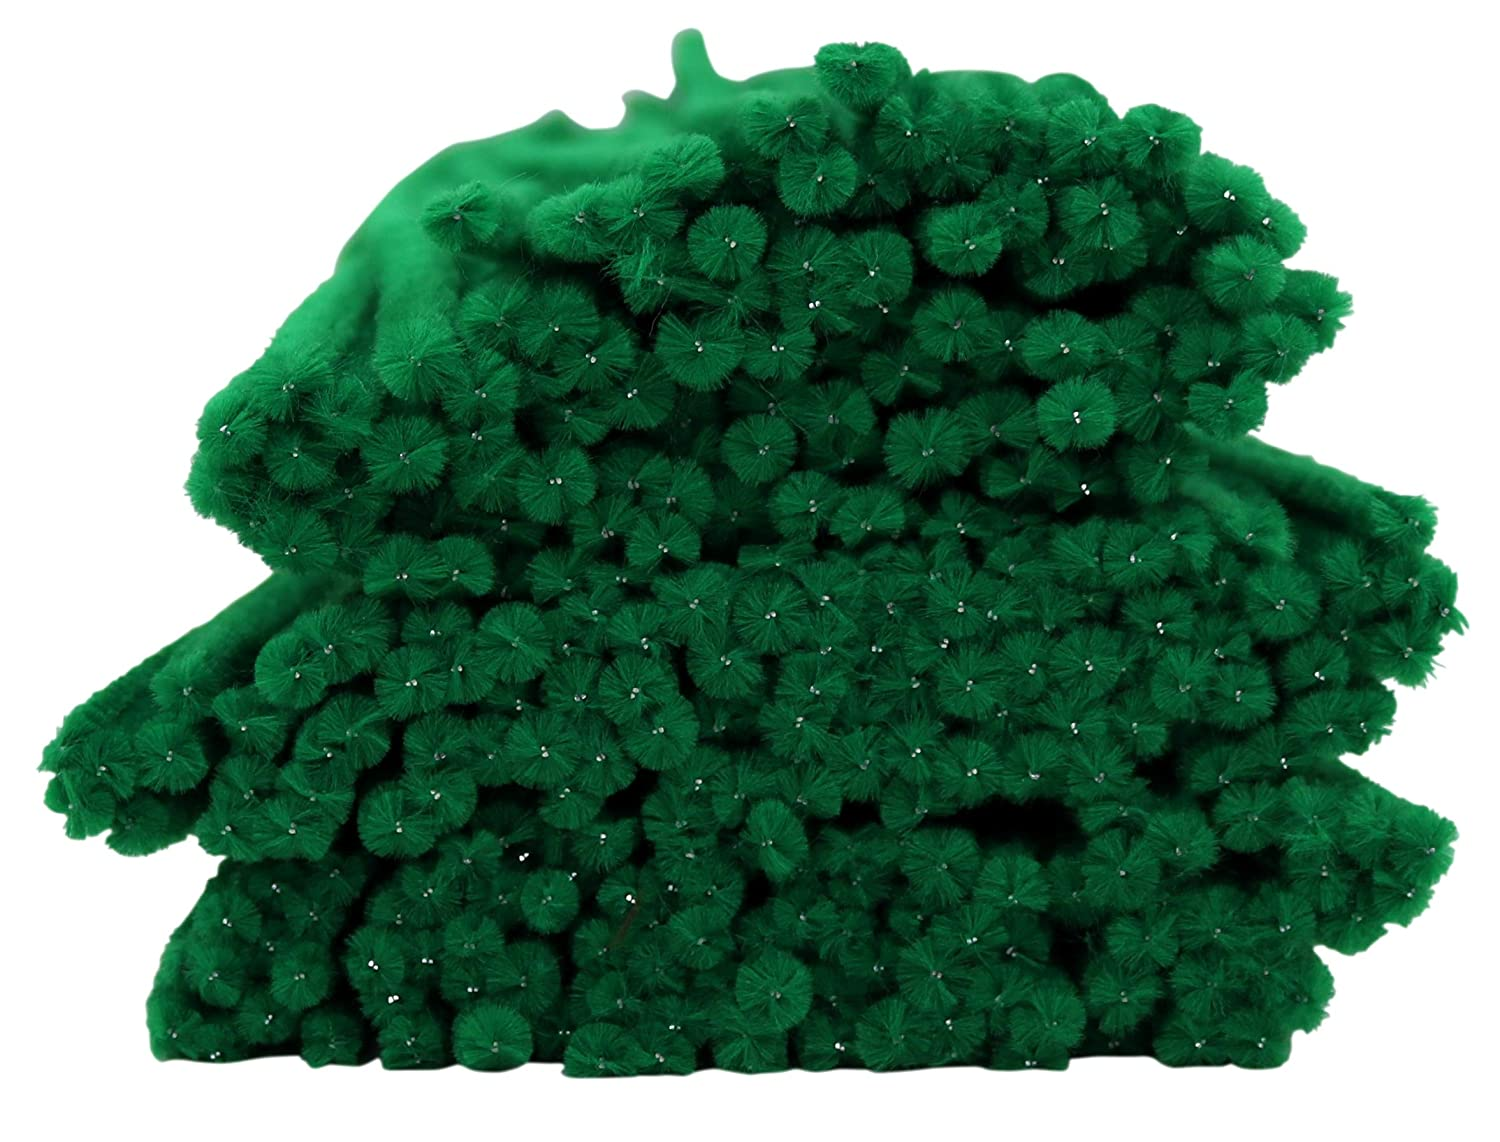 300-Count Green Iconikal Pipe Cleaners Craft Chenille Stems